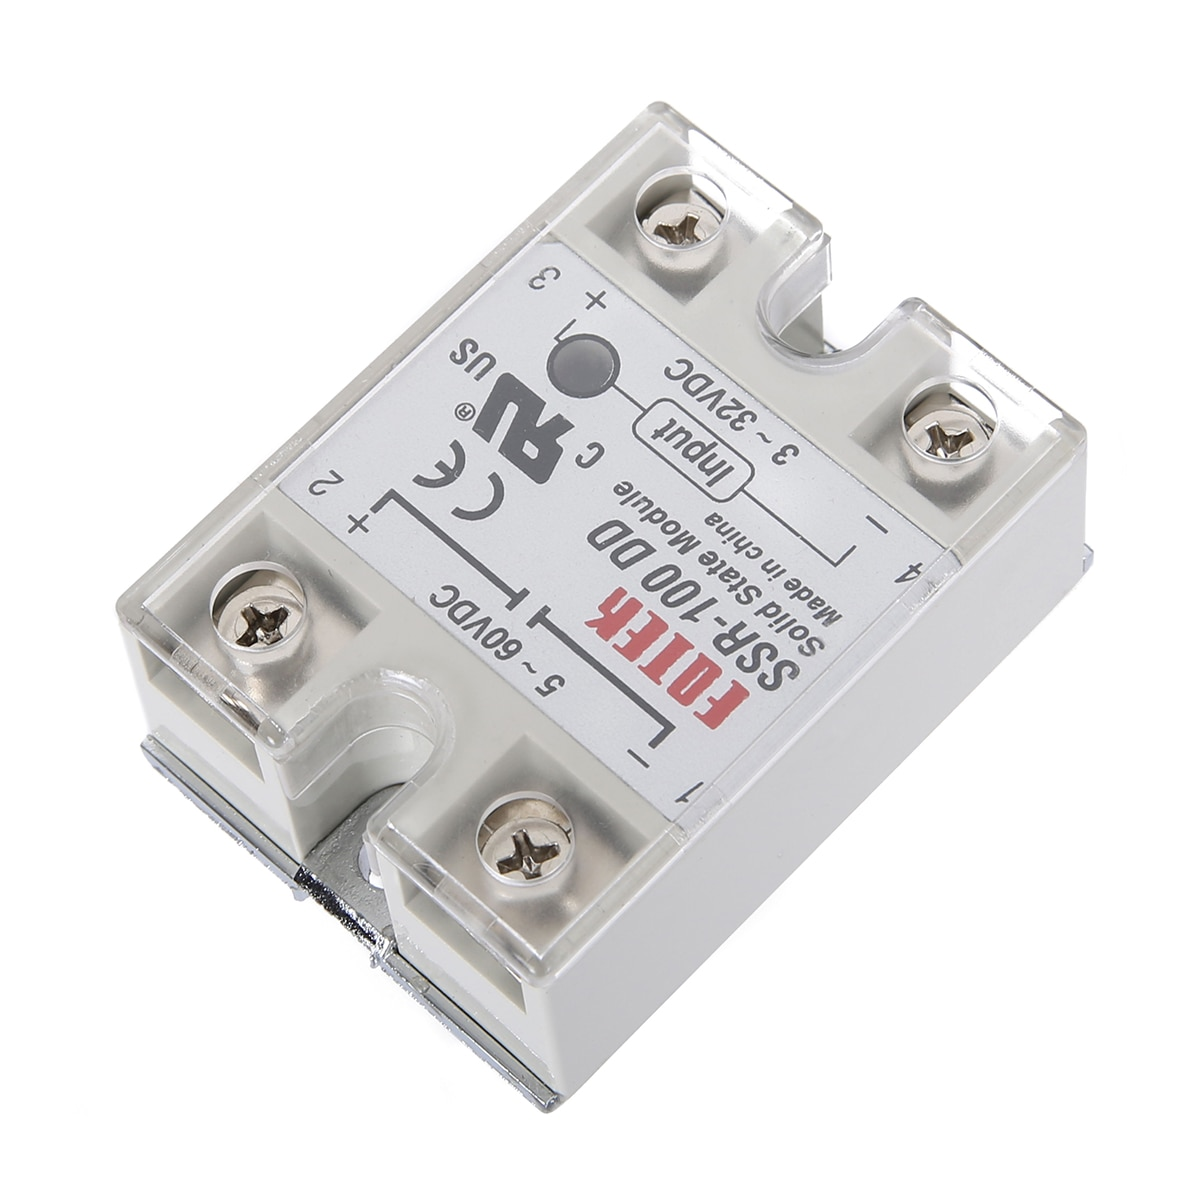 1pc Mayitr SSR-100DD Solid State Module Relay 100A 3-32V DC/5-60V DC Contactless Solid-state Relays